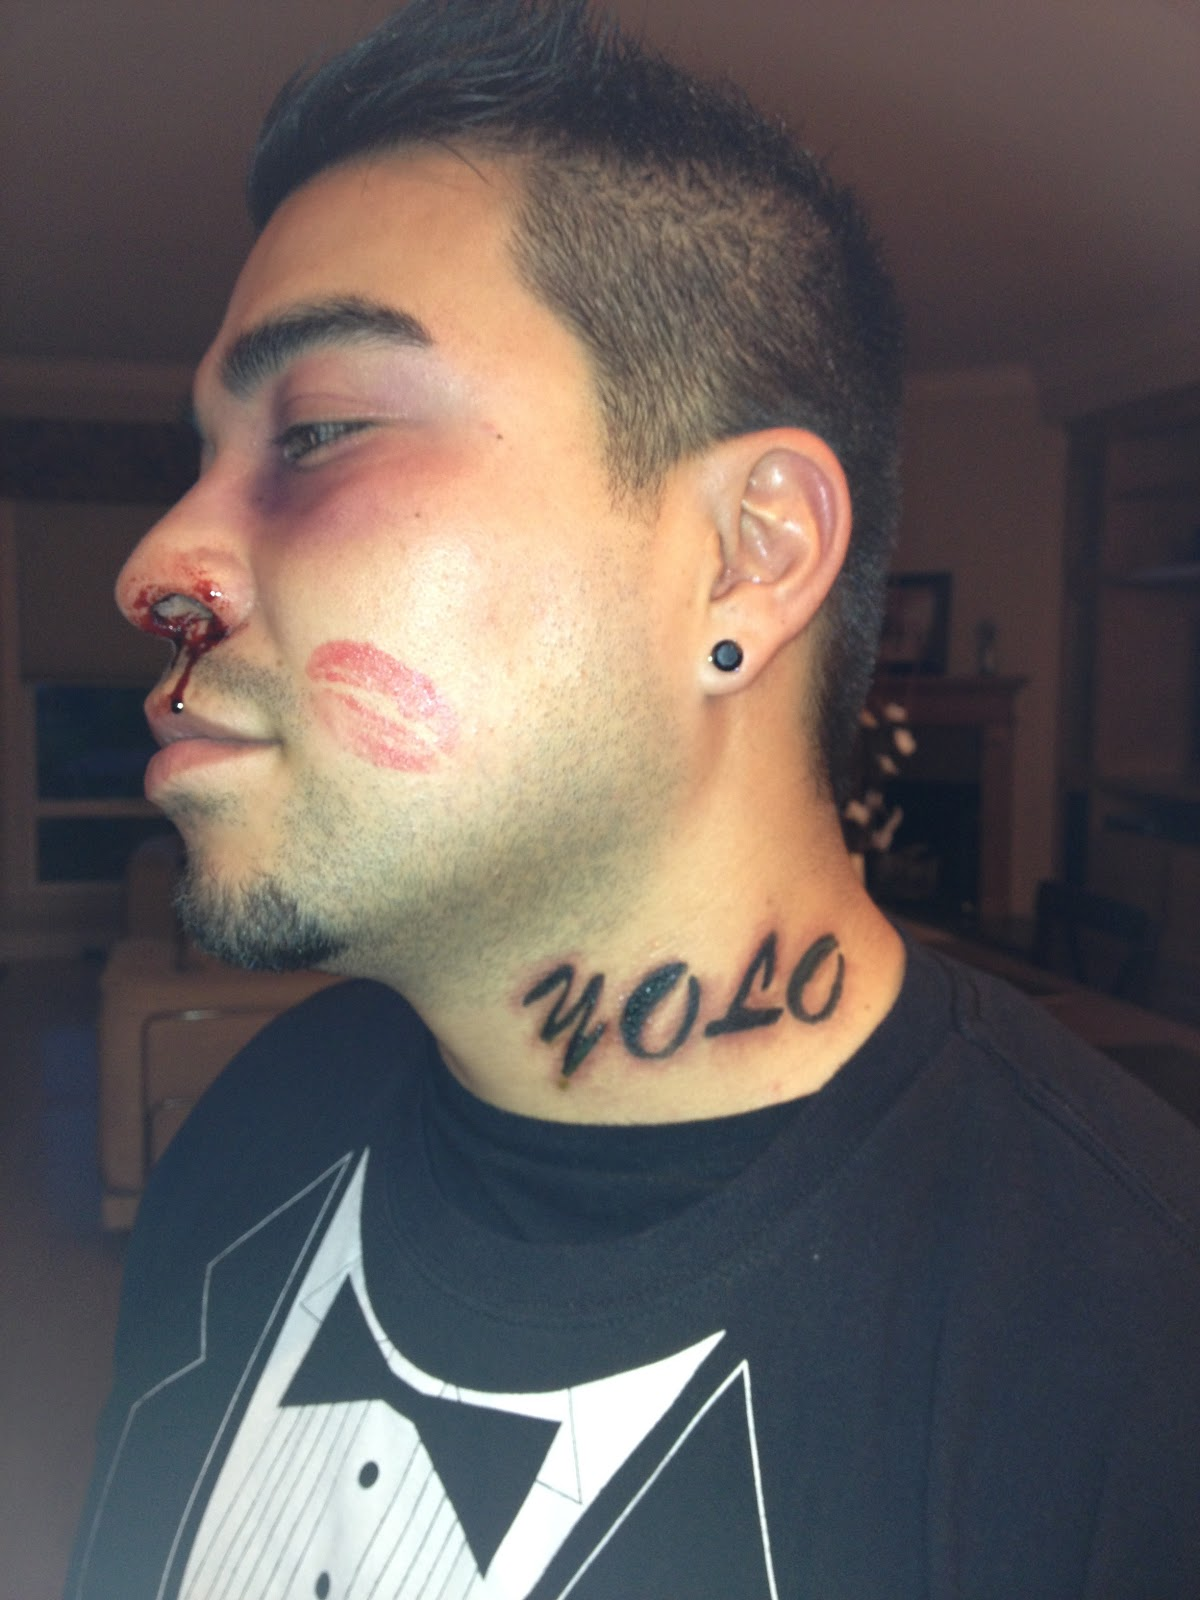 Lips Kiss Tattoo On Face For Men